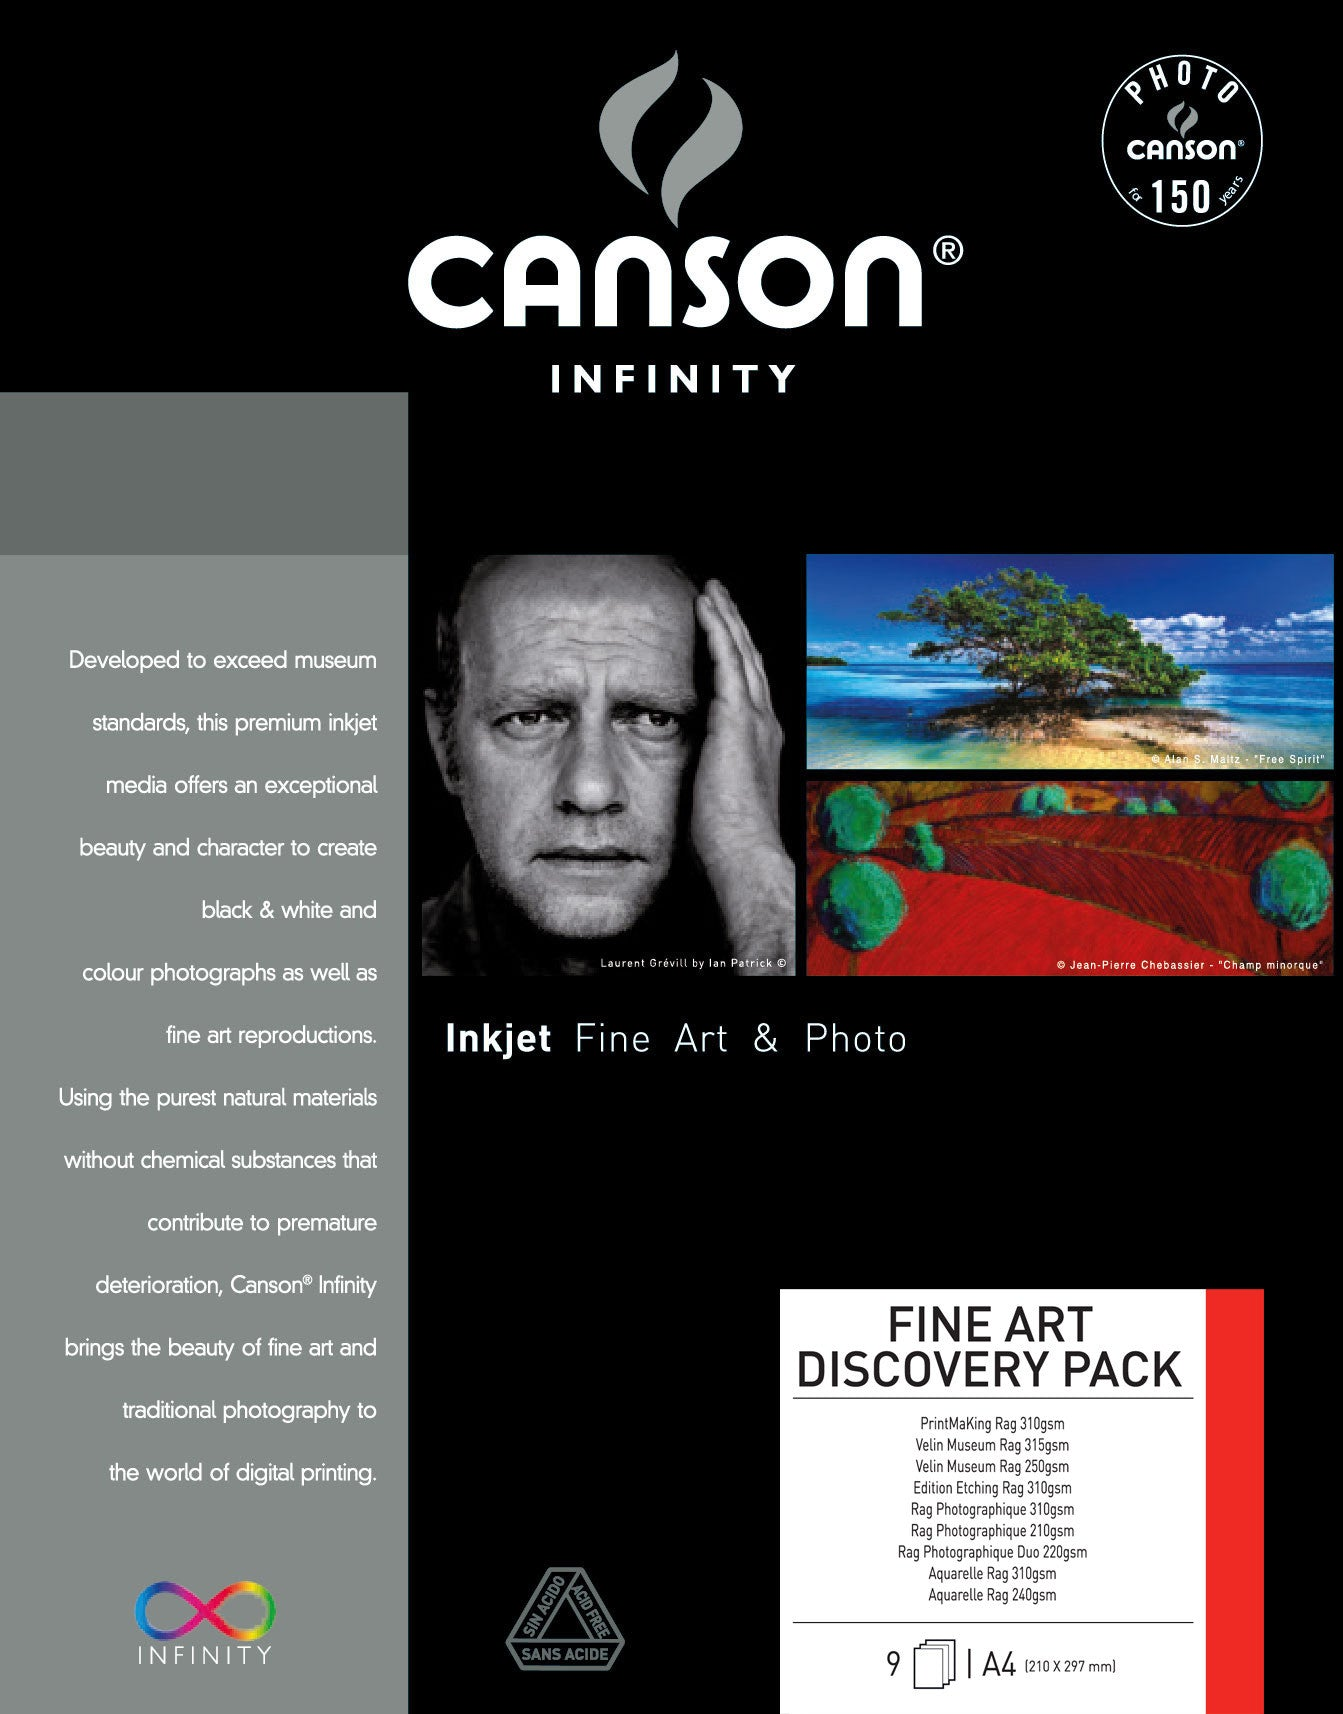 Canson Infinity Discovery Pack Fine Art - A4 - 9 sheets - Wall Your Photos